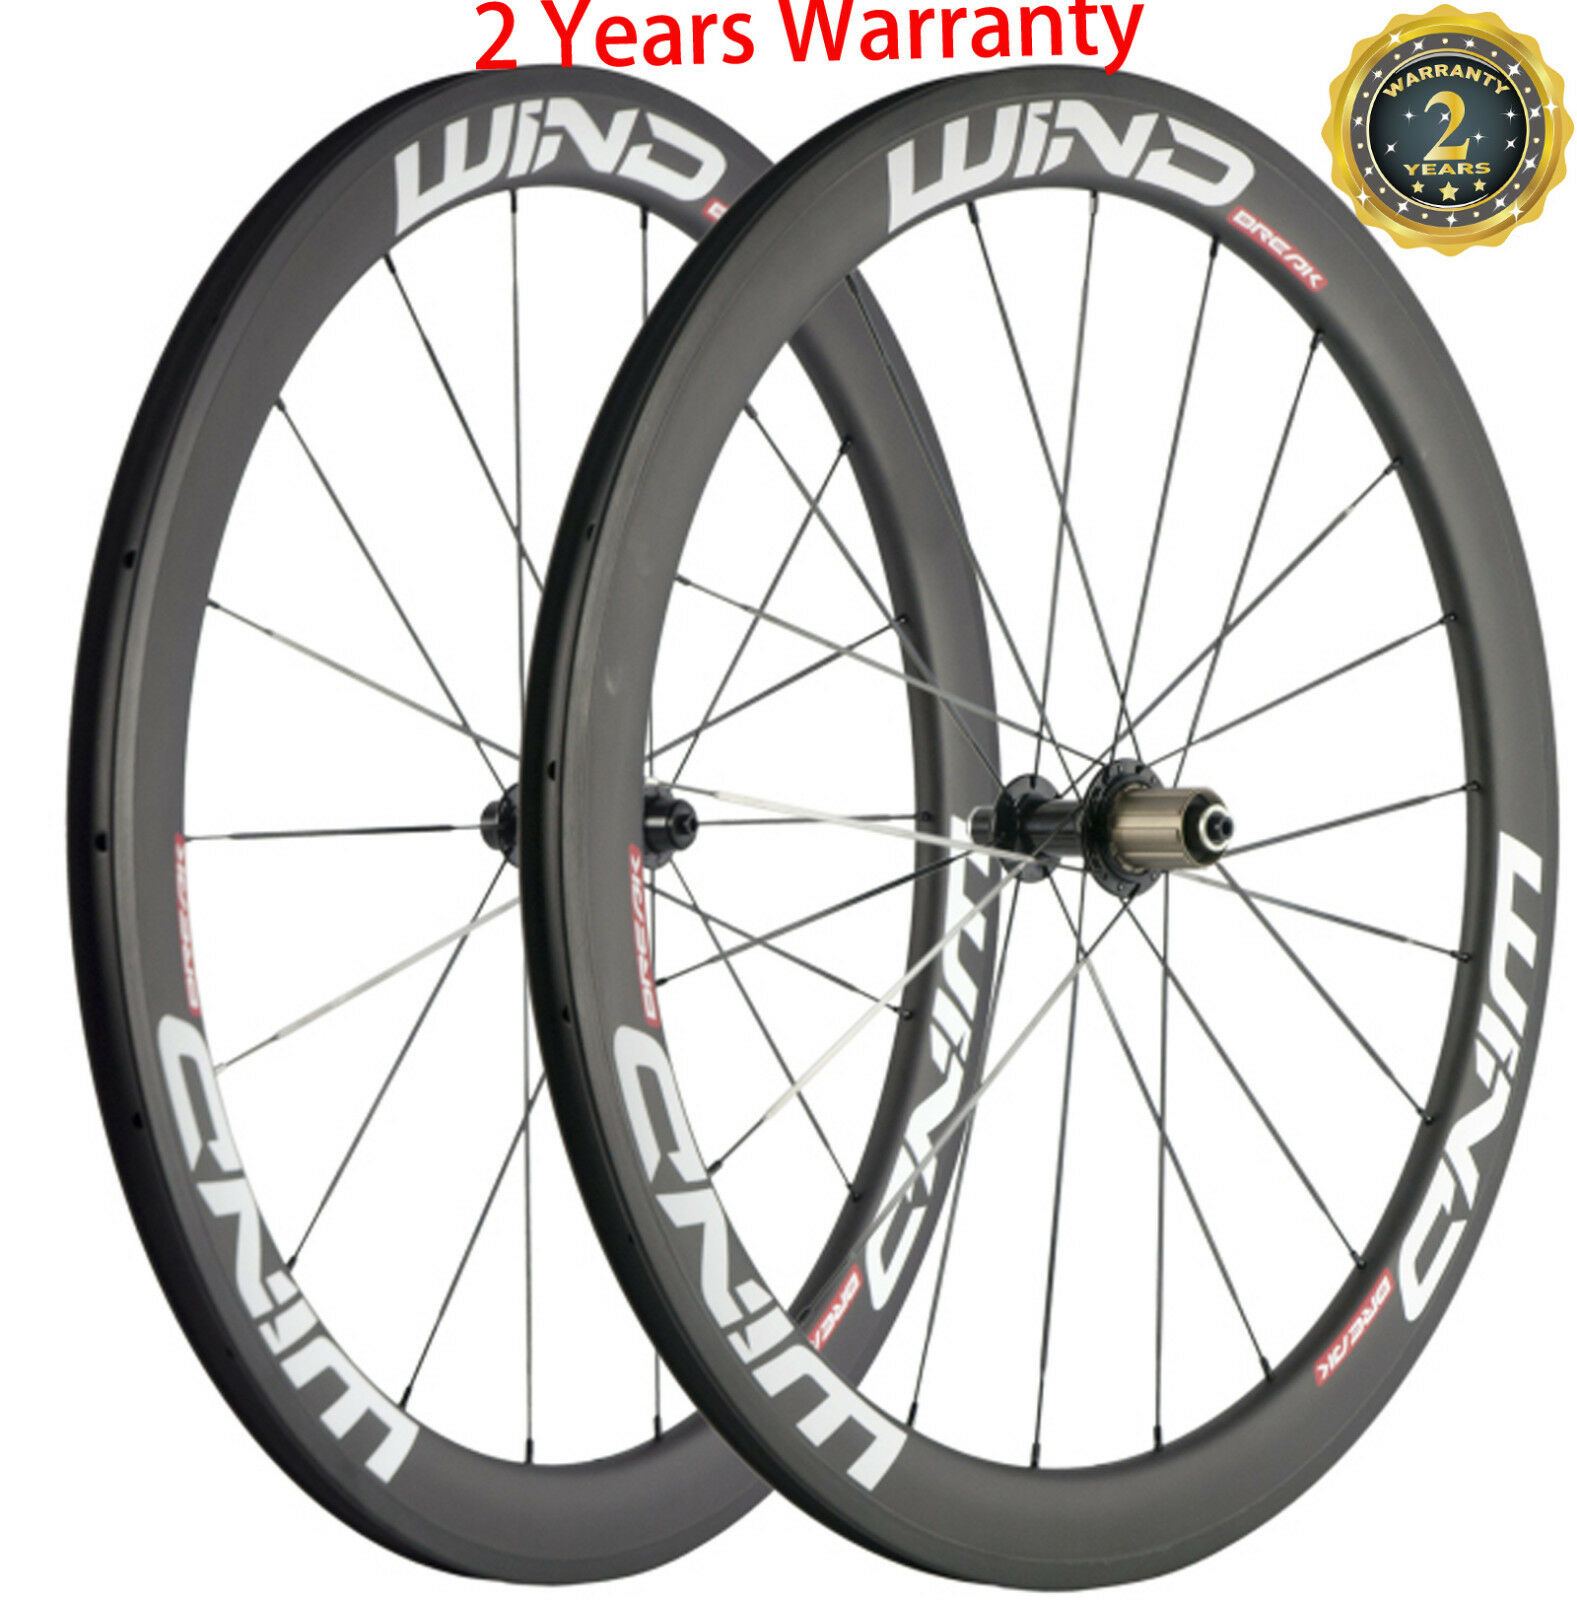 Carbon Wheels 50mm Clincher  Road Bike Cycling Wheelset 700C Front+Rear Wheelset  sale outlet